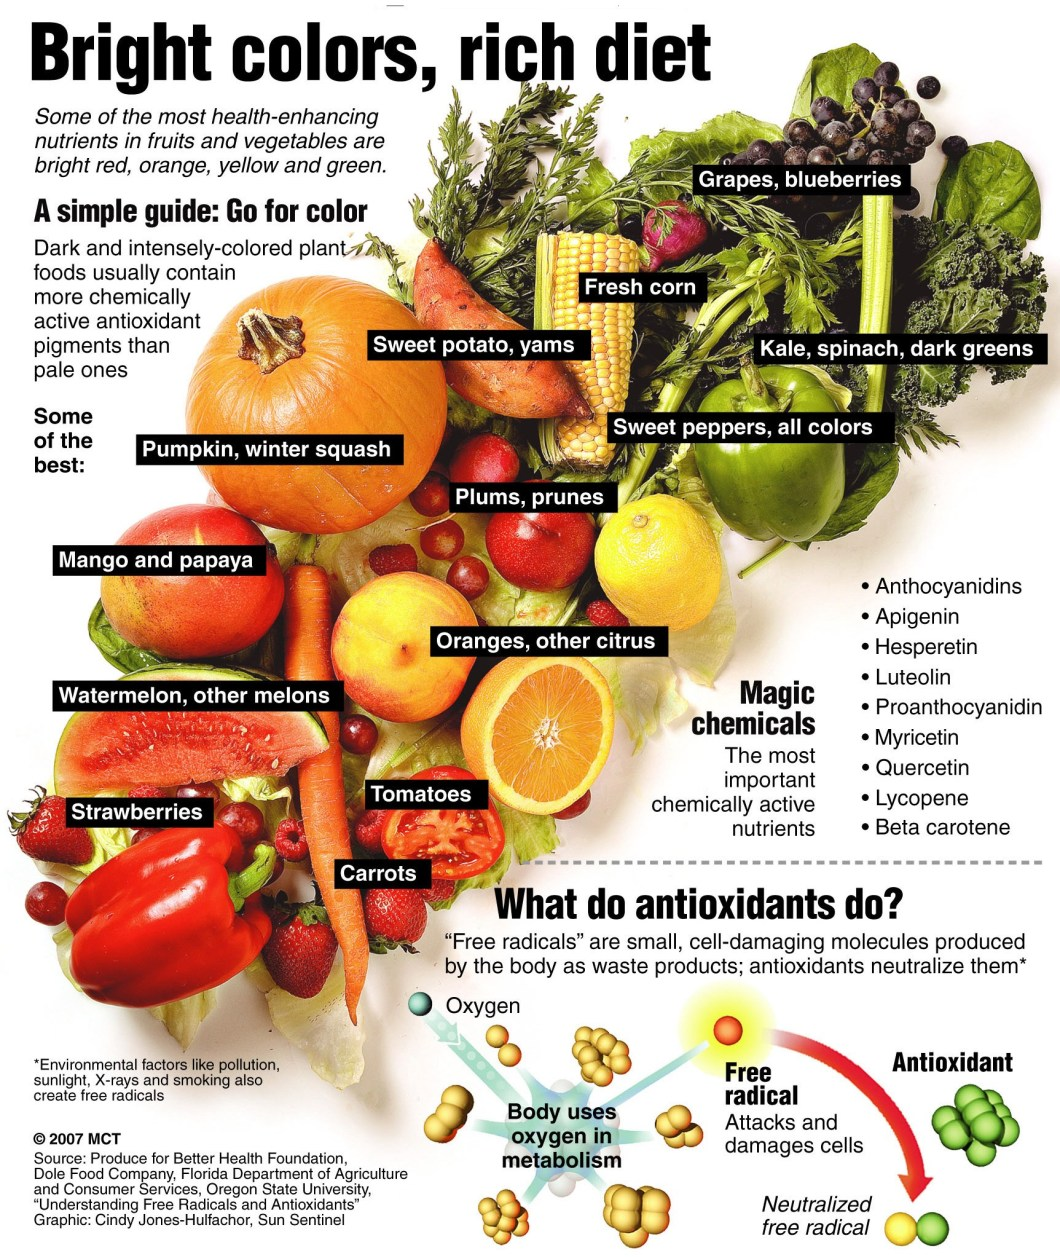 Brighter The Color, Richer The Diet - Infographic